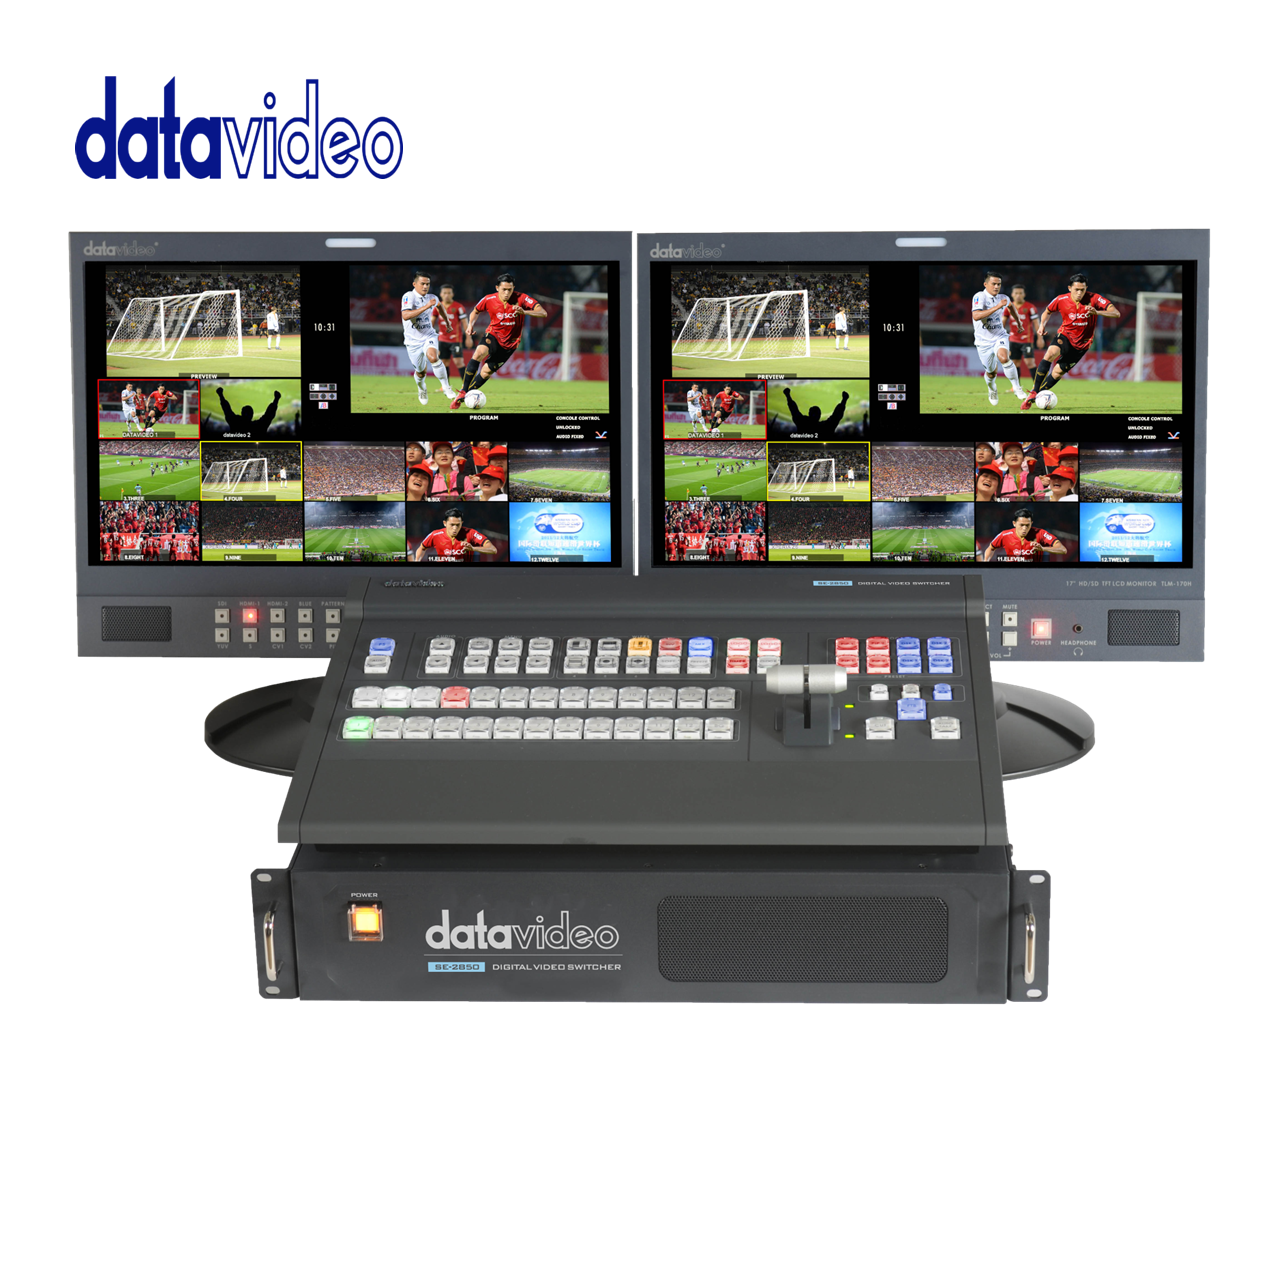 Datavideo SE-2850 HD/SD 12-Channel Digital Video Switcher Pro Video Data Video